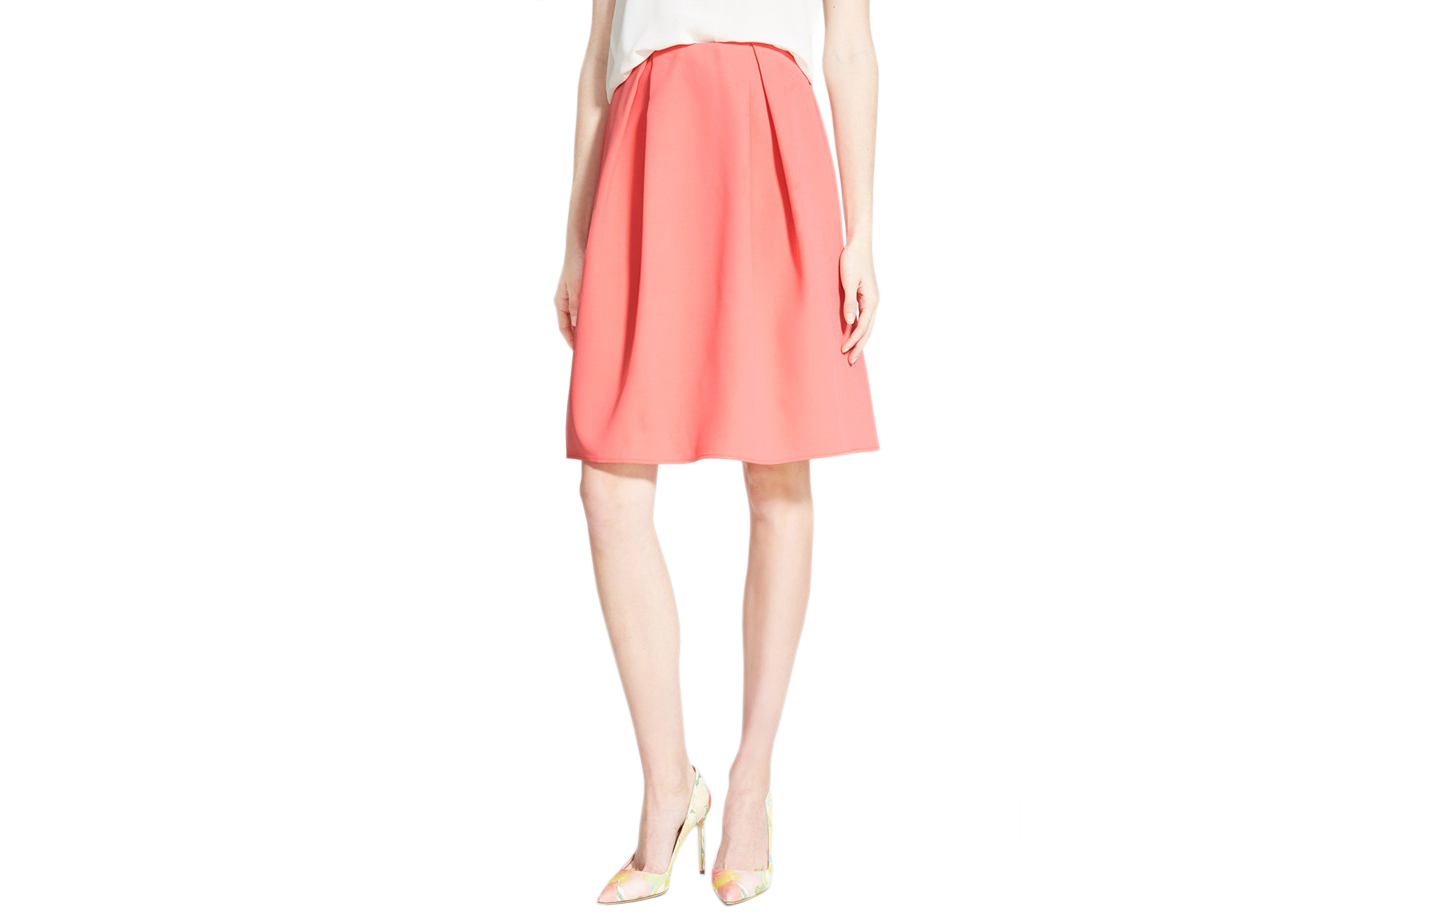 Chelsea 28 Pleated A-Line Skirt